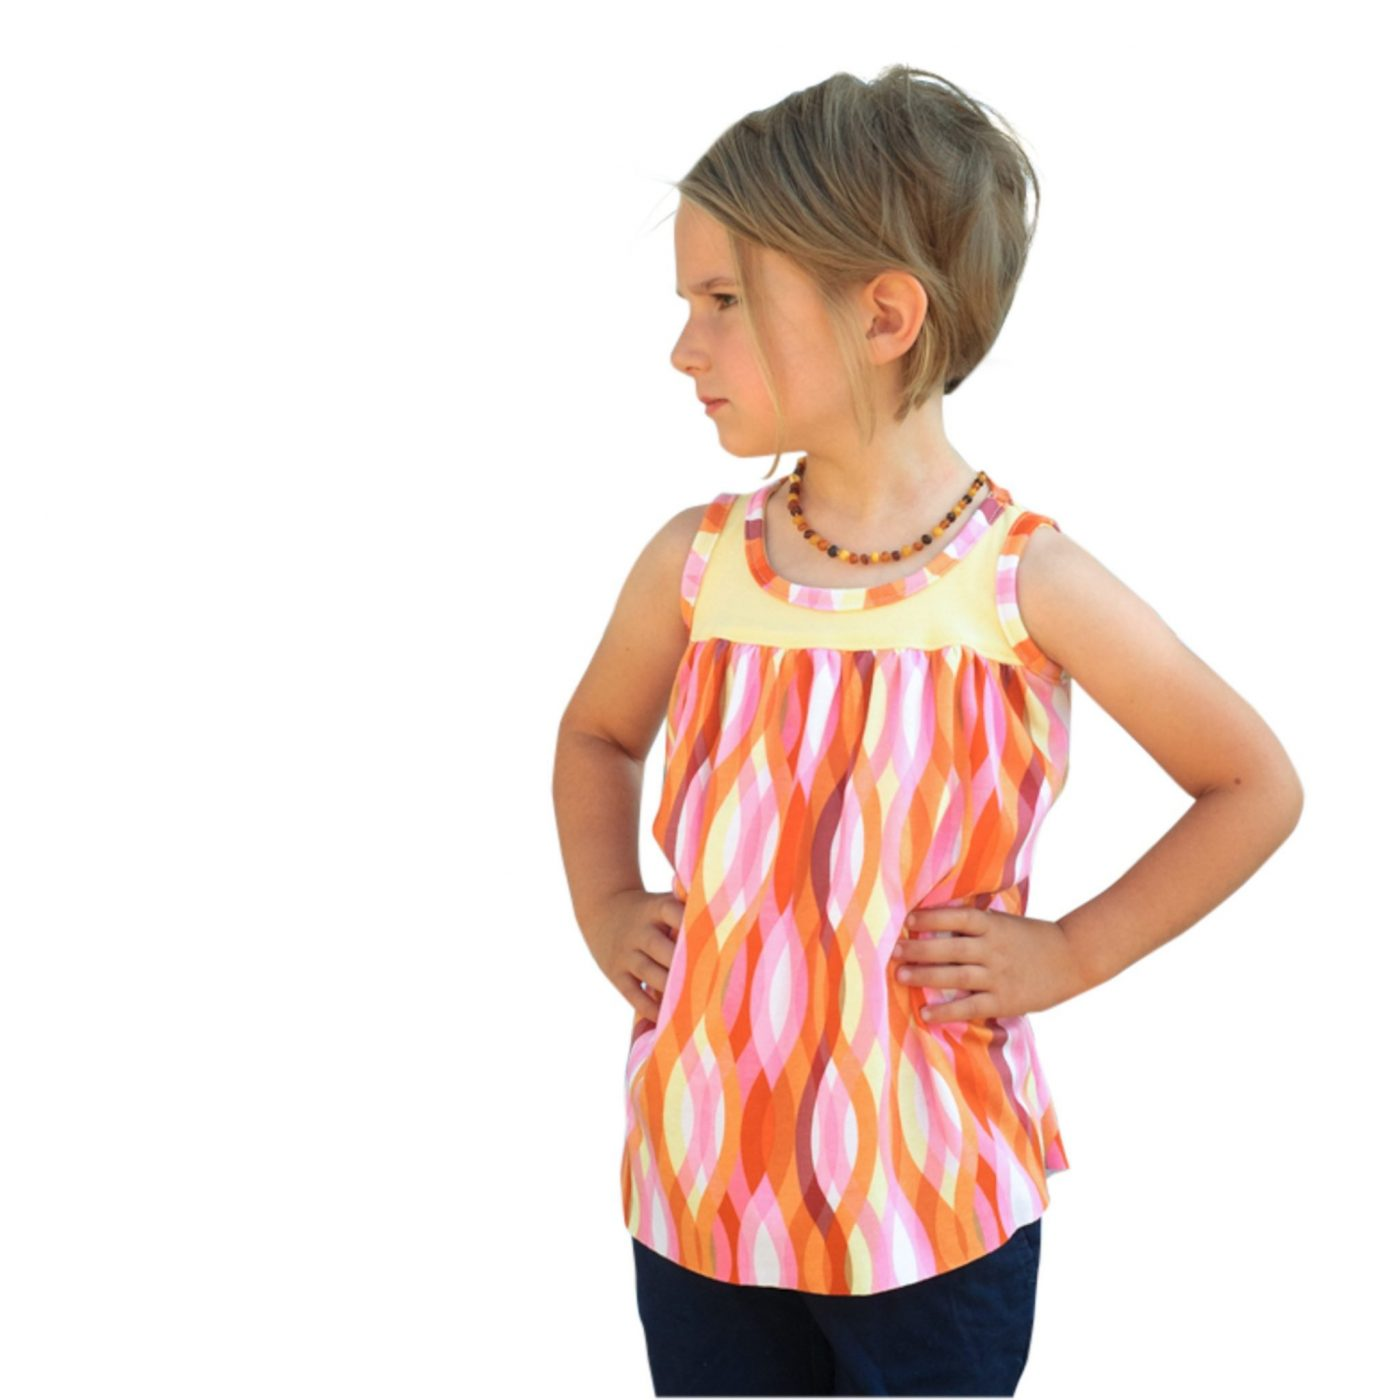 The jIsje Top PDF Sewing Pattern